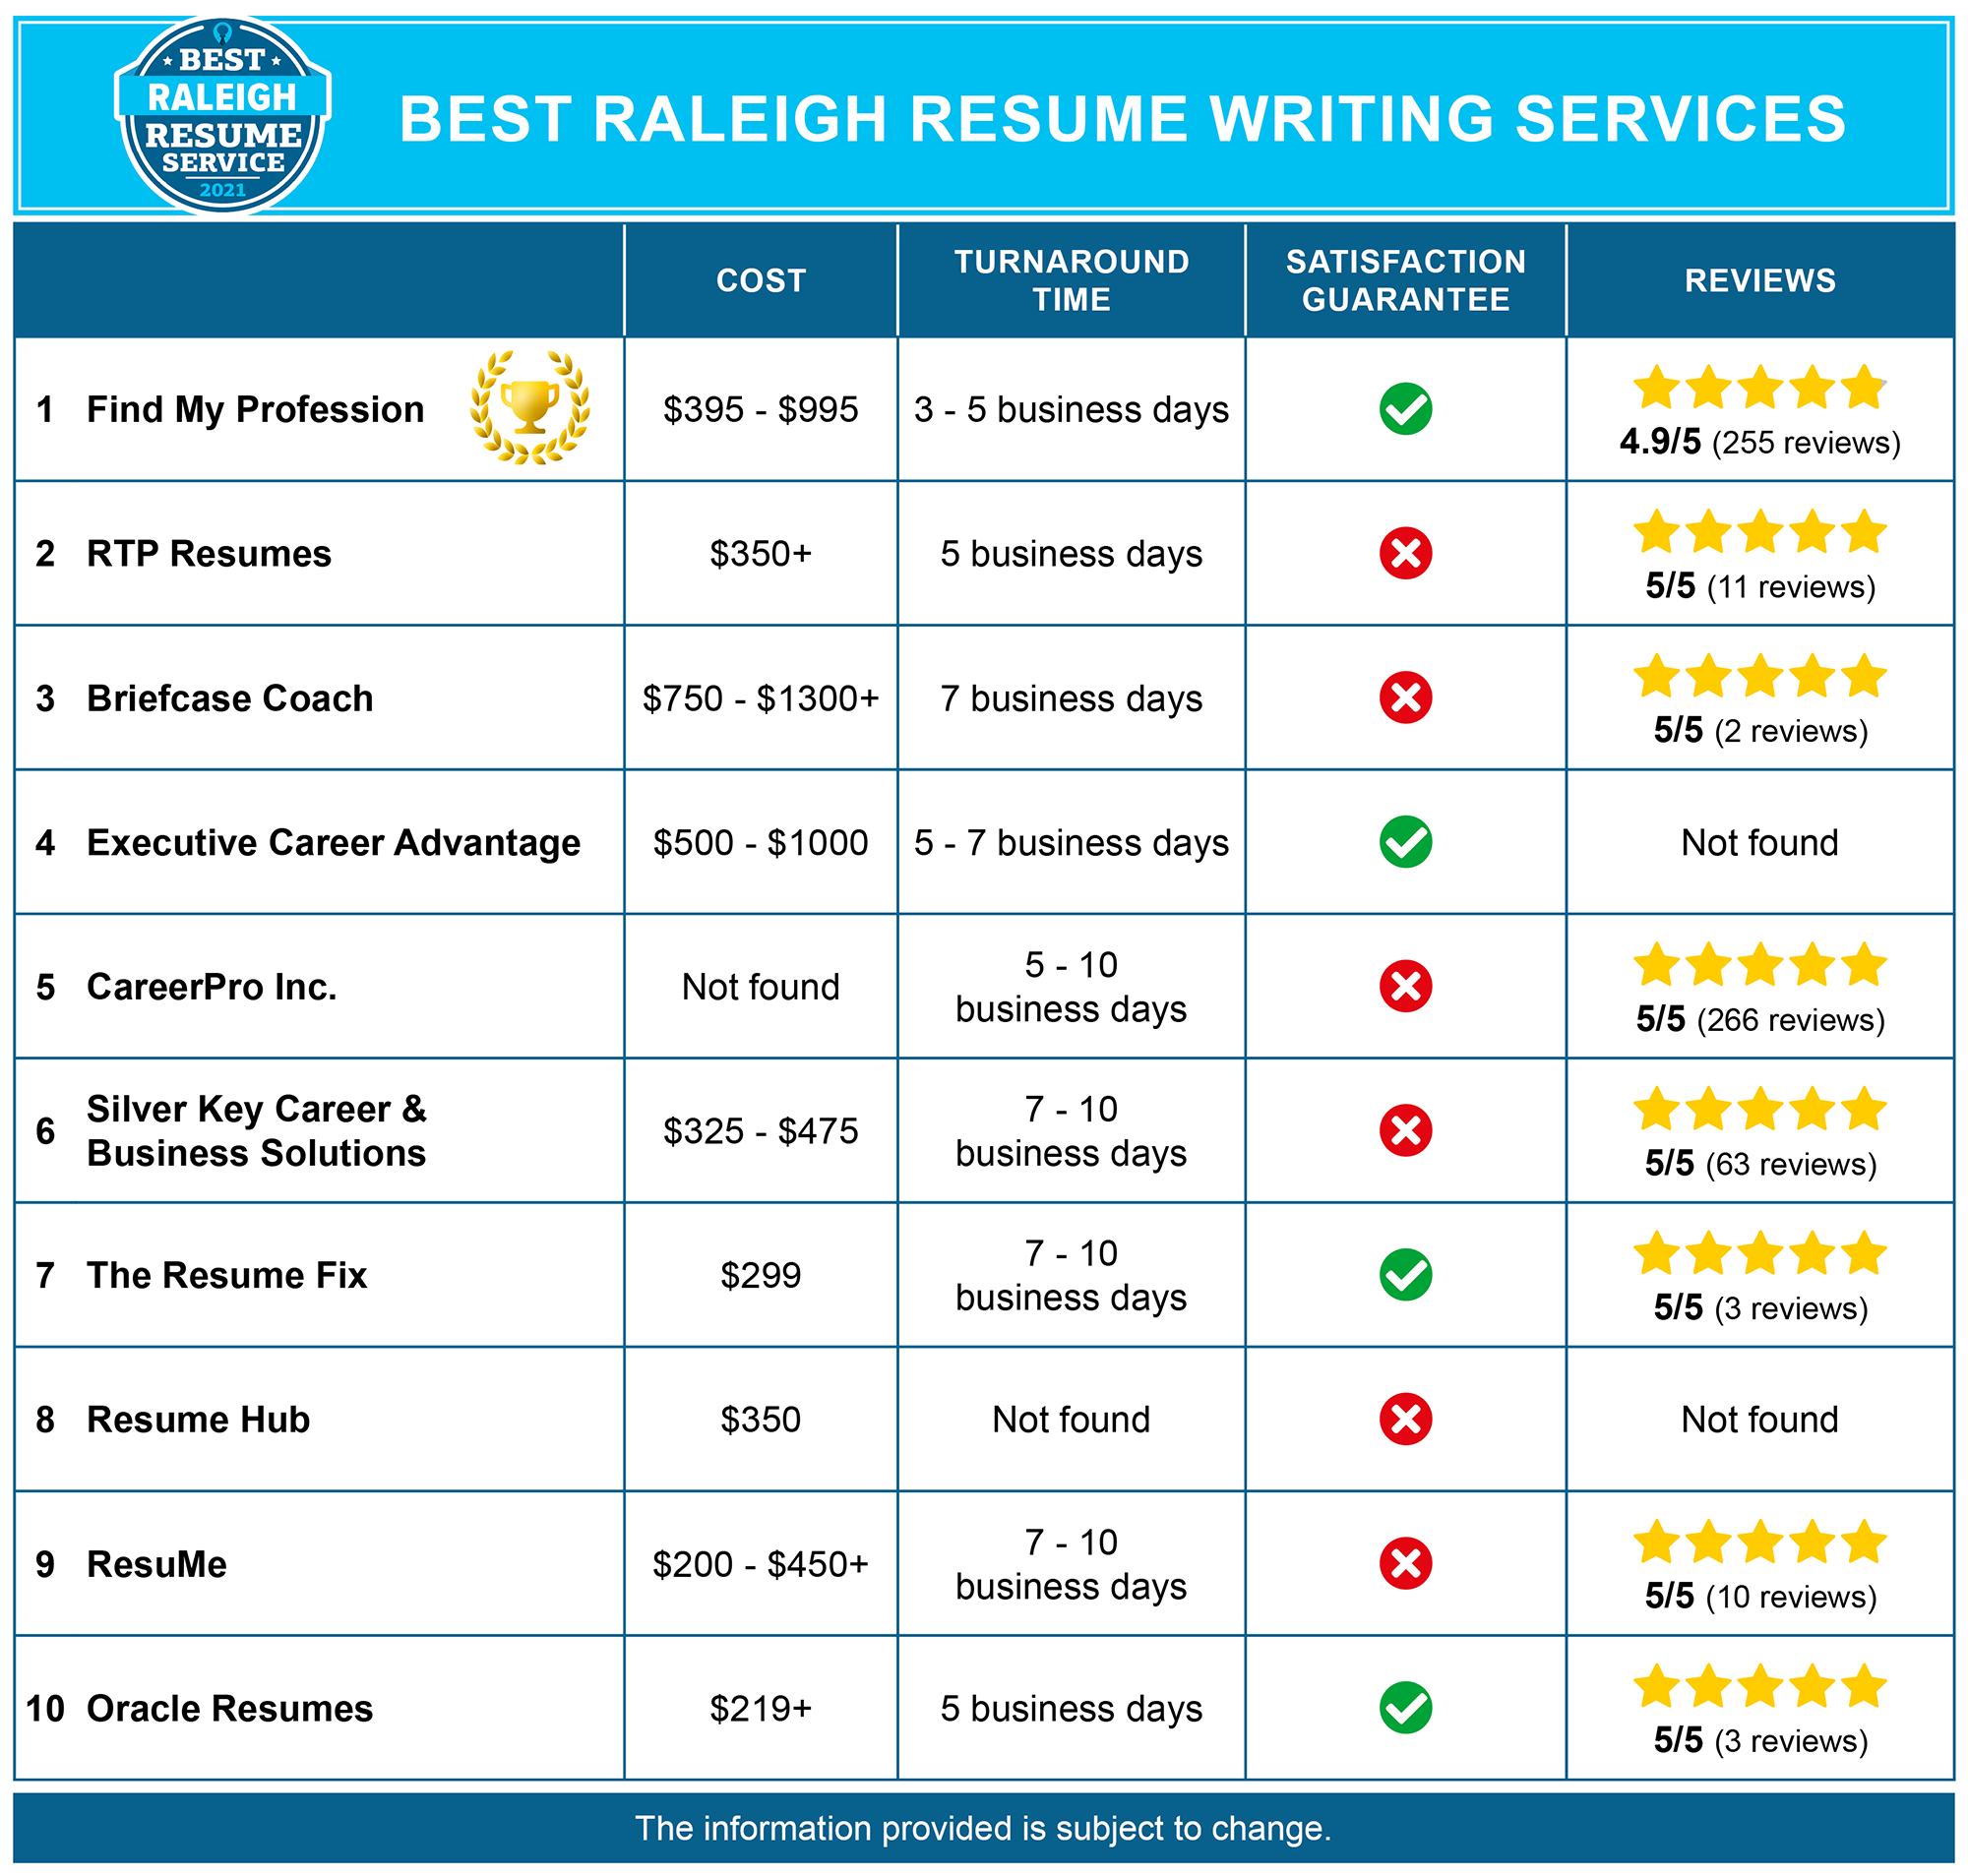 Best Raleigh Resume Services